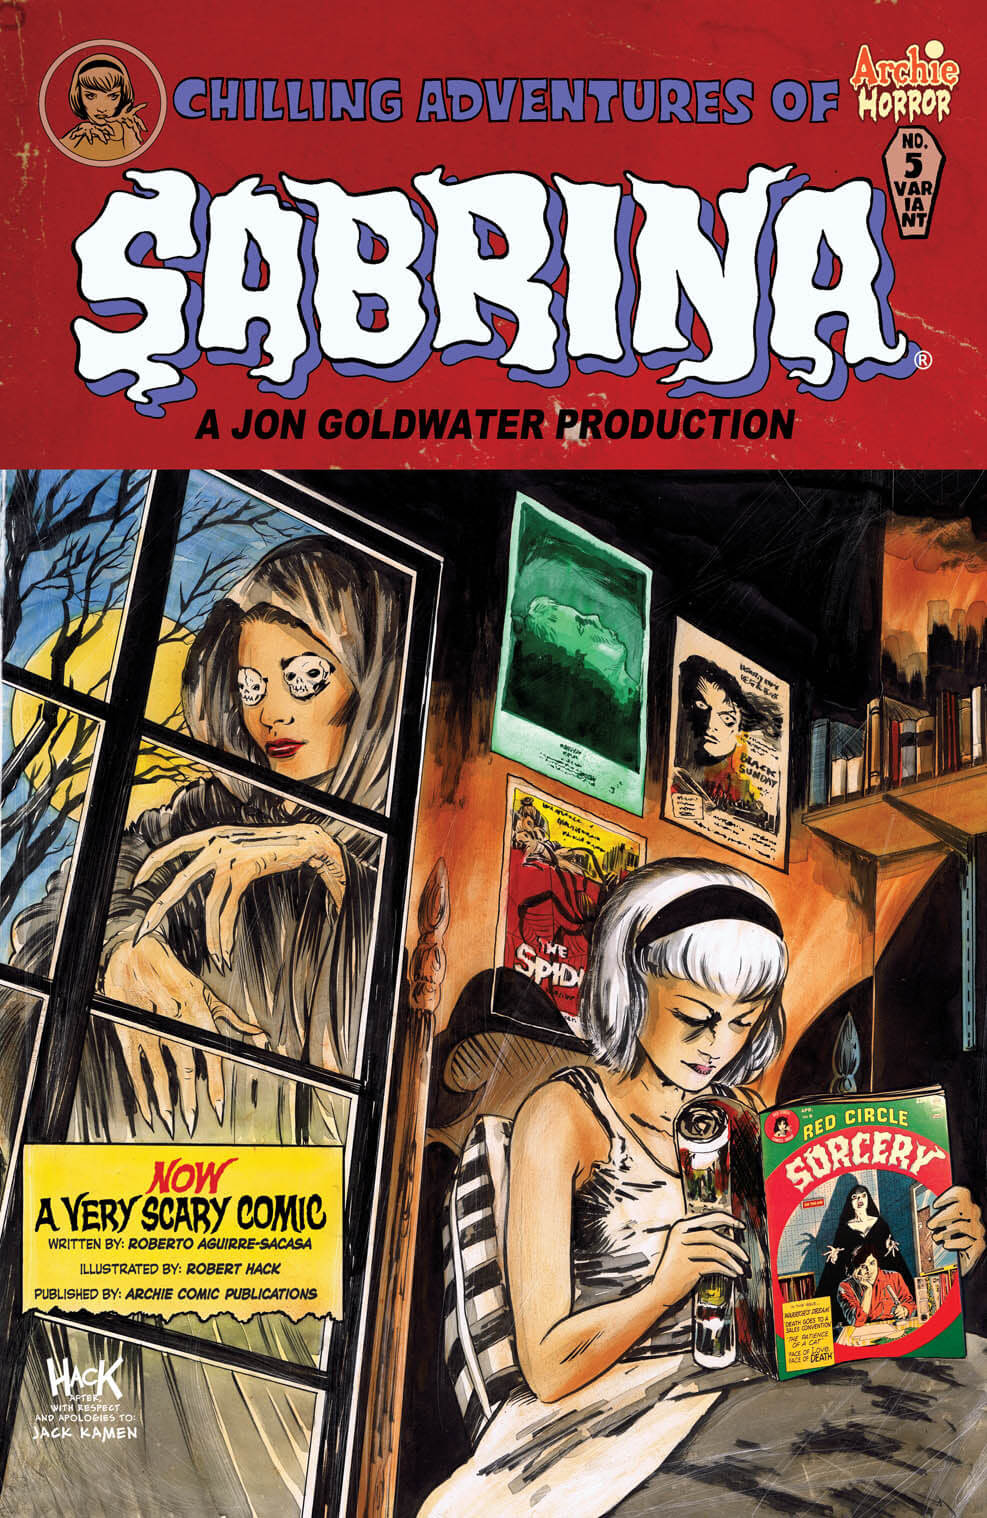 CHILLING ADVENTURES OF SABRINA #5 Variant Cover by Robert Hack - On Sale 5/18